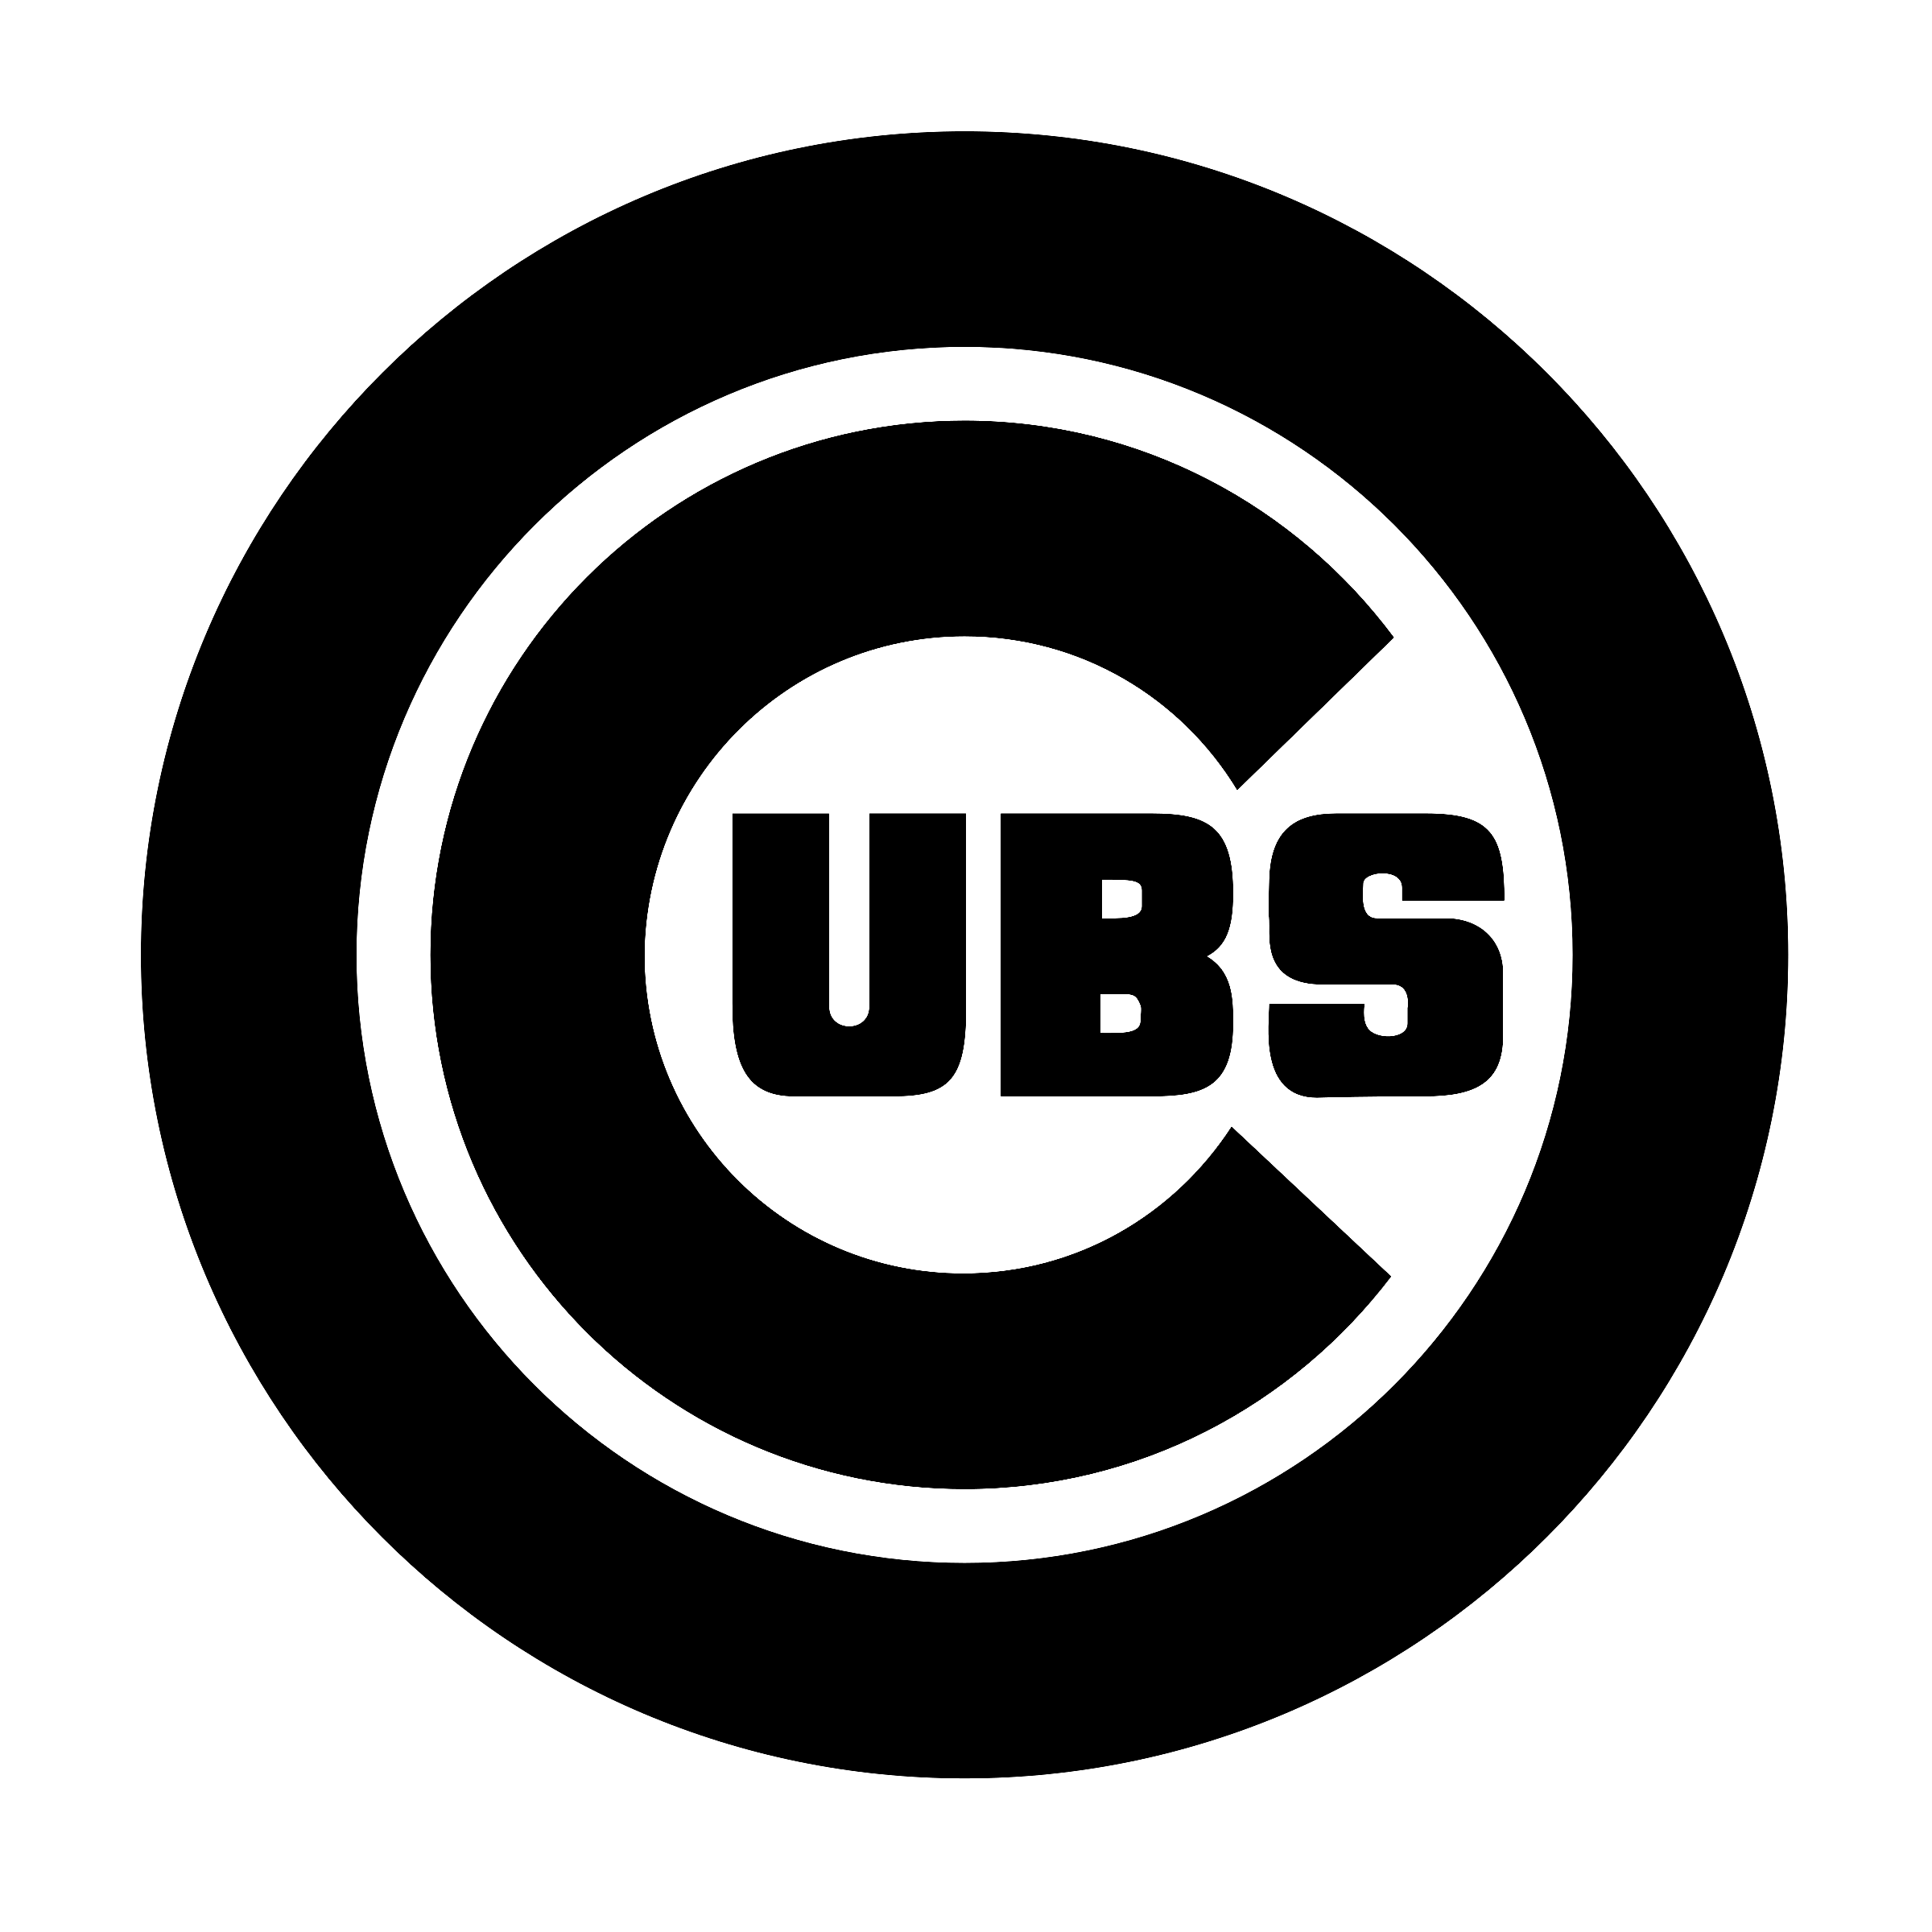 Chicago Cubs Logo PNG - 105874